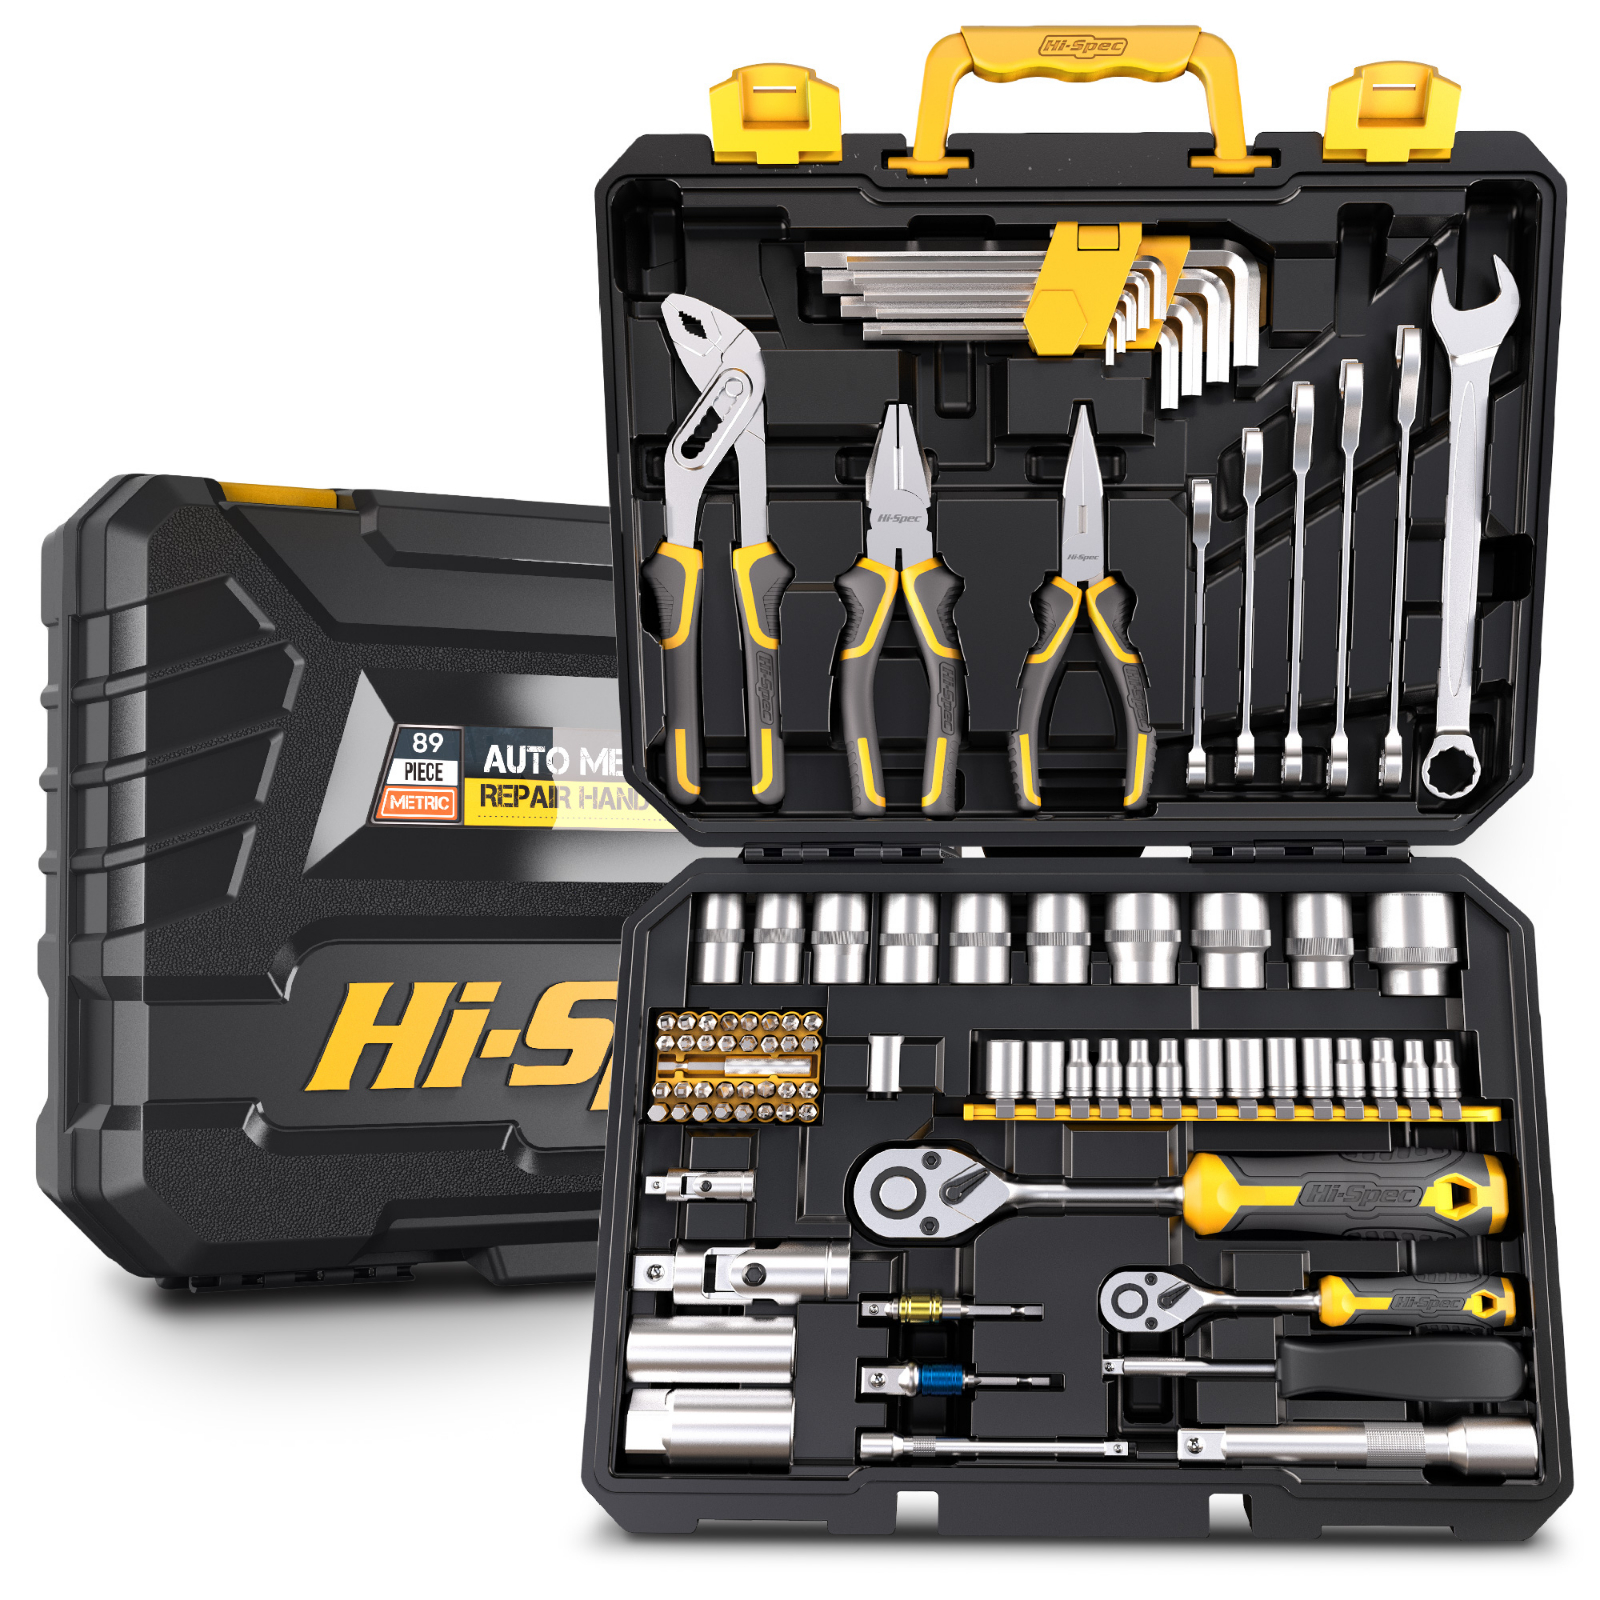 Professional Socket Wrench Auto 4 1 Spec For 2 Combination 1 Tools Of Toolbox Tool Tool Mechanic S Hand Kit Set Set With 89pc Hi